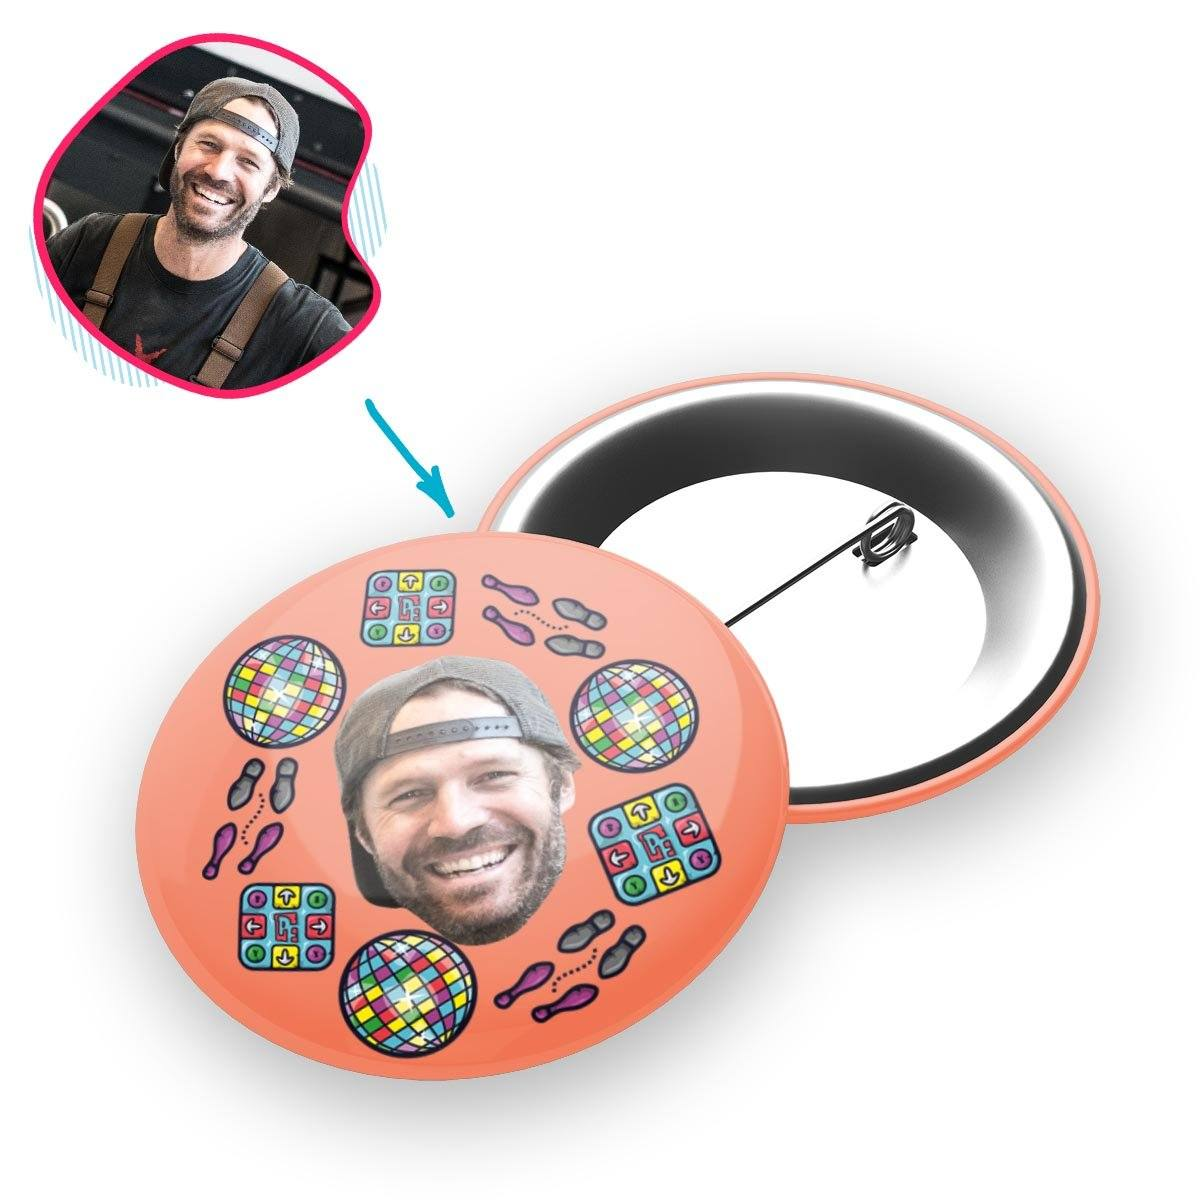 salmon Dancing pin personalized with photo of face printed on it